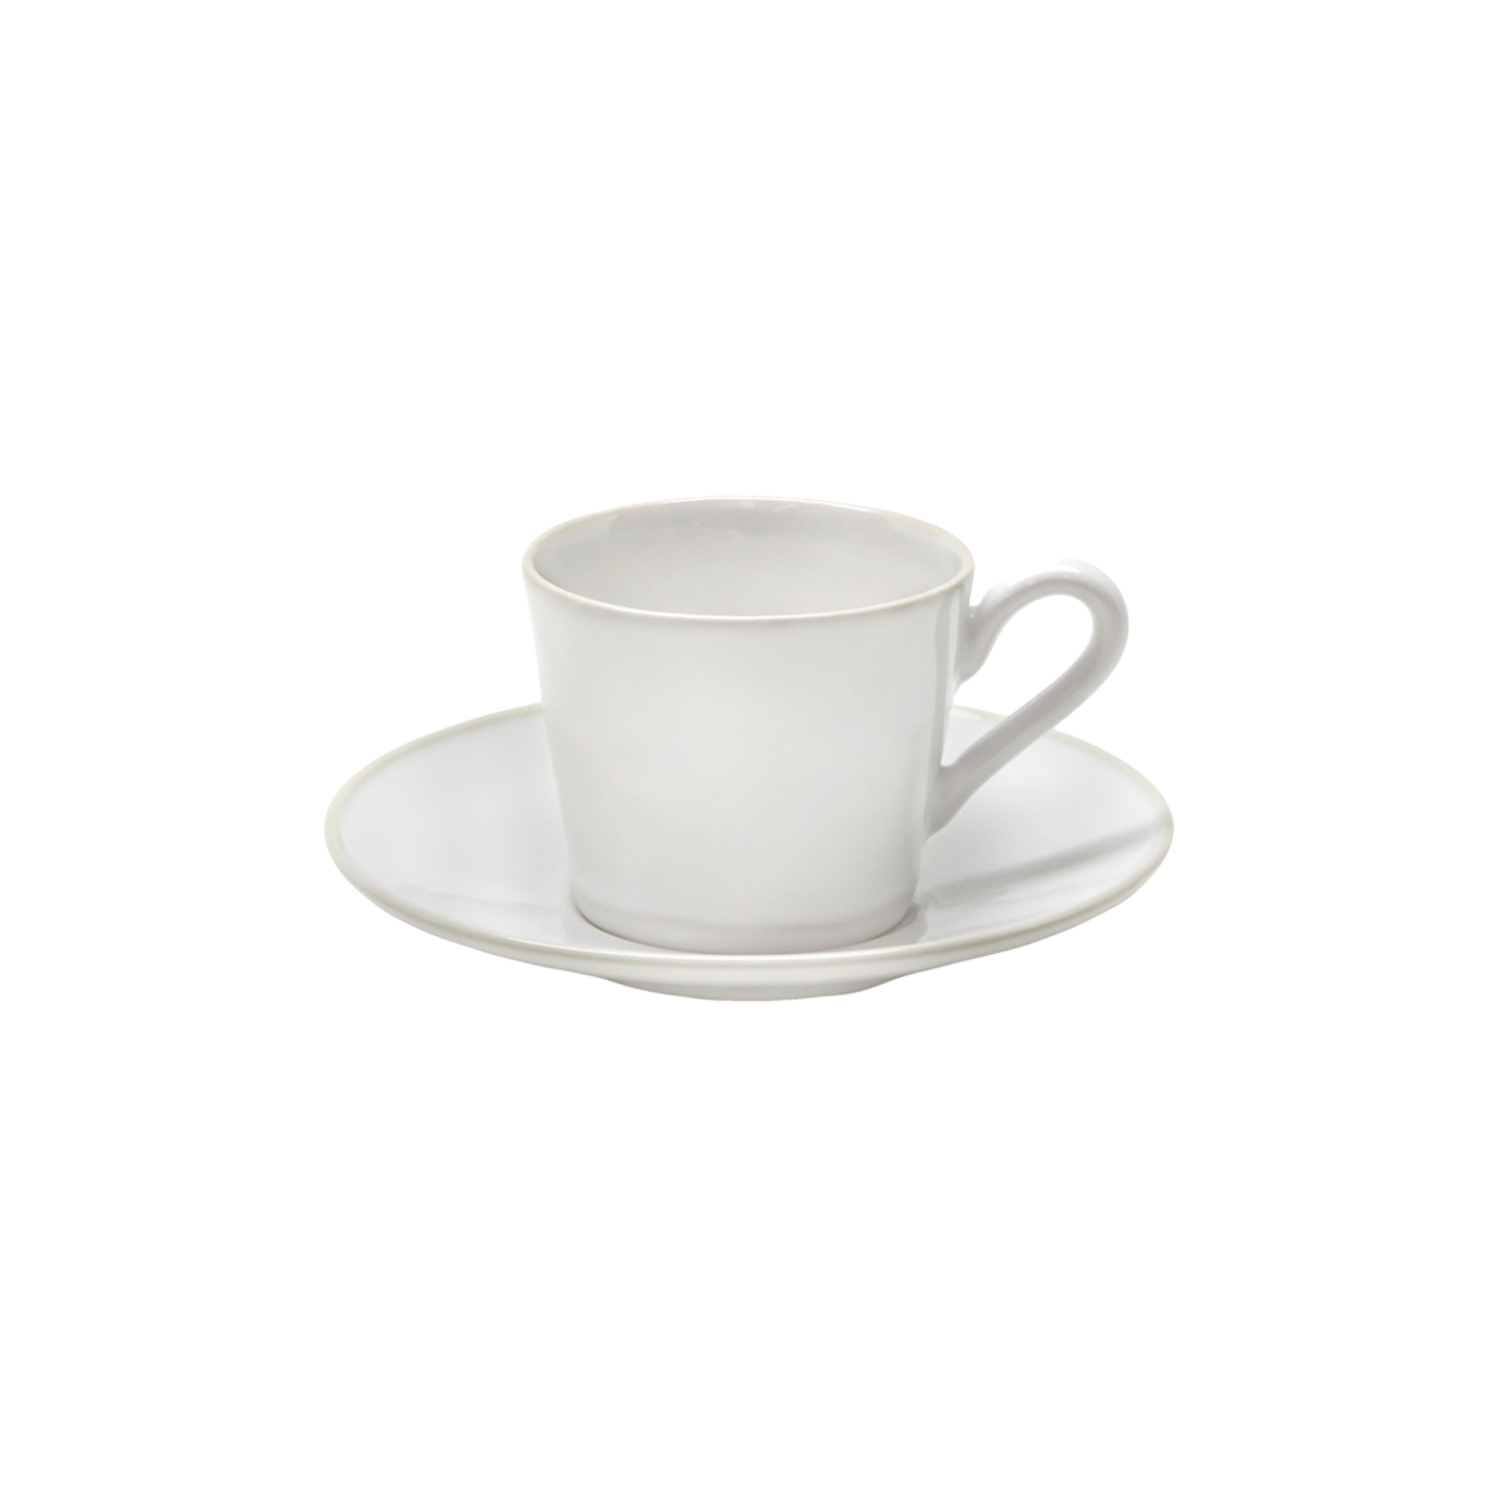 Astoria White Tea Cup & Saucer 0.18l Sparkle Gift